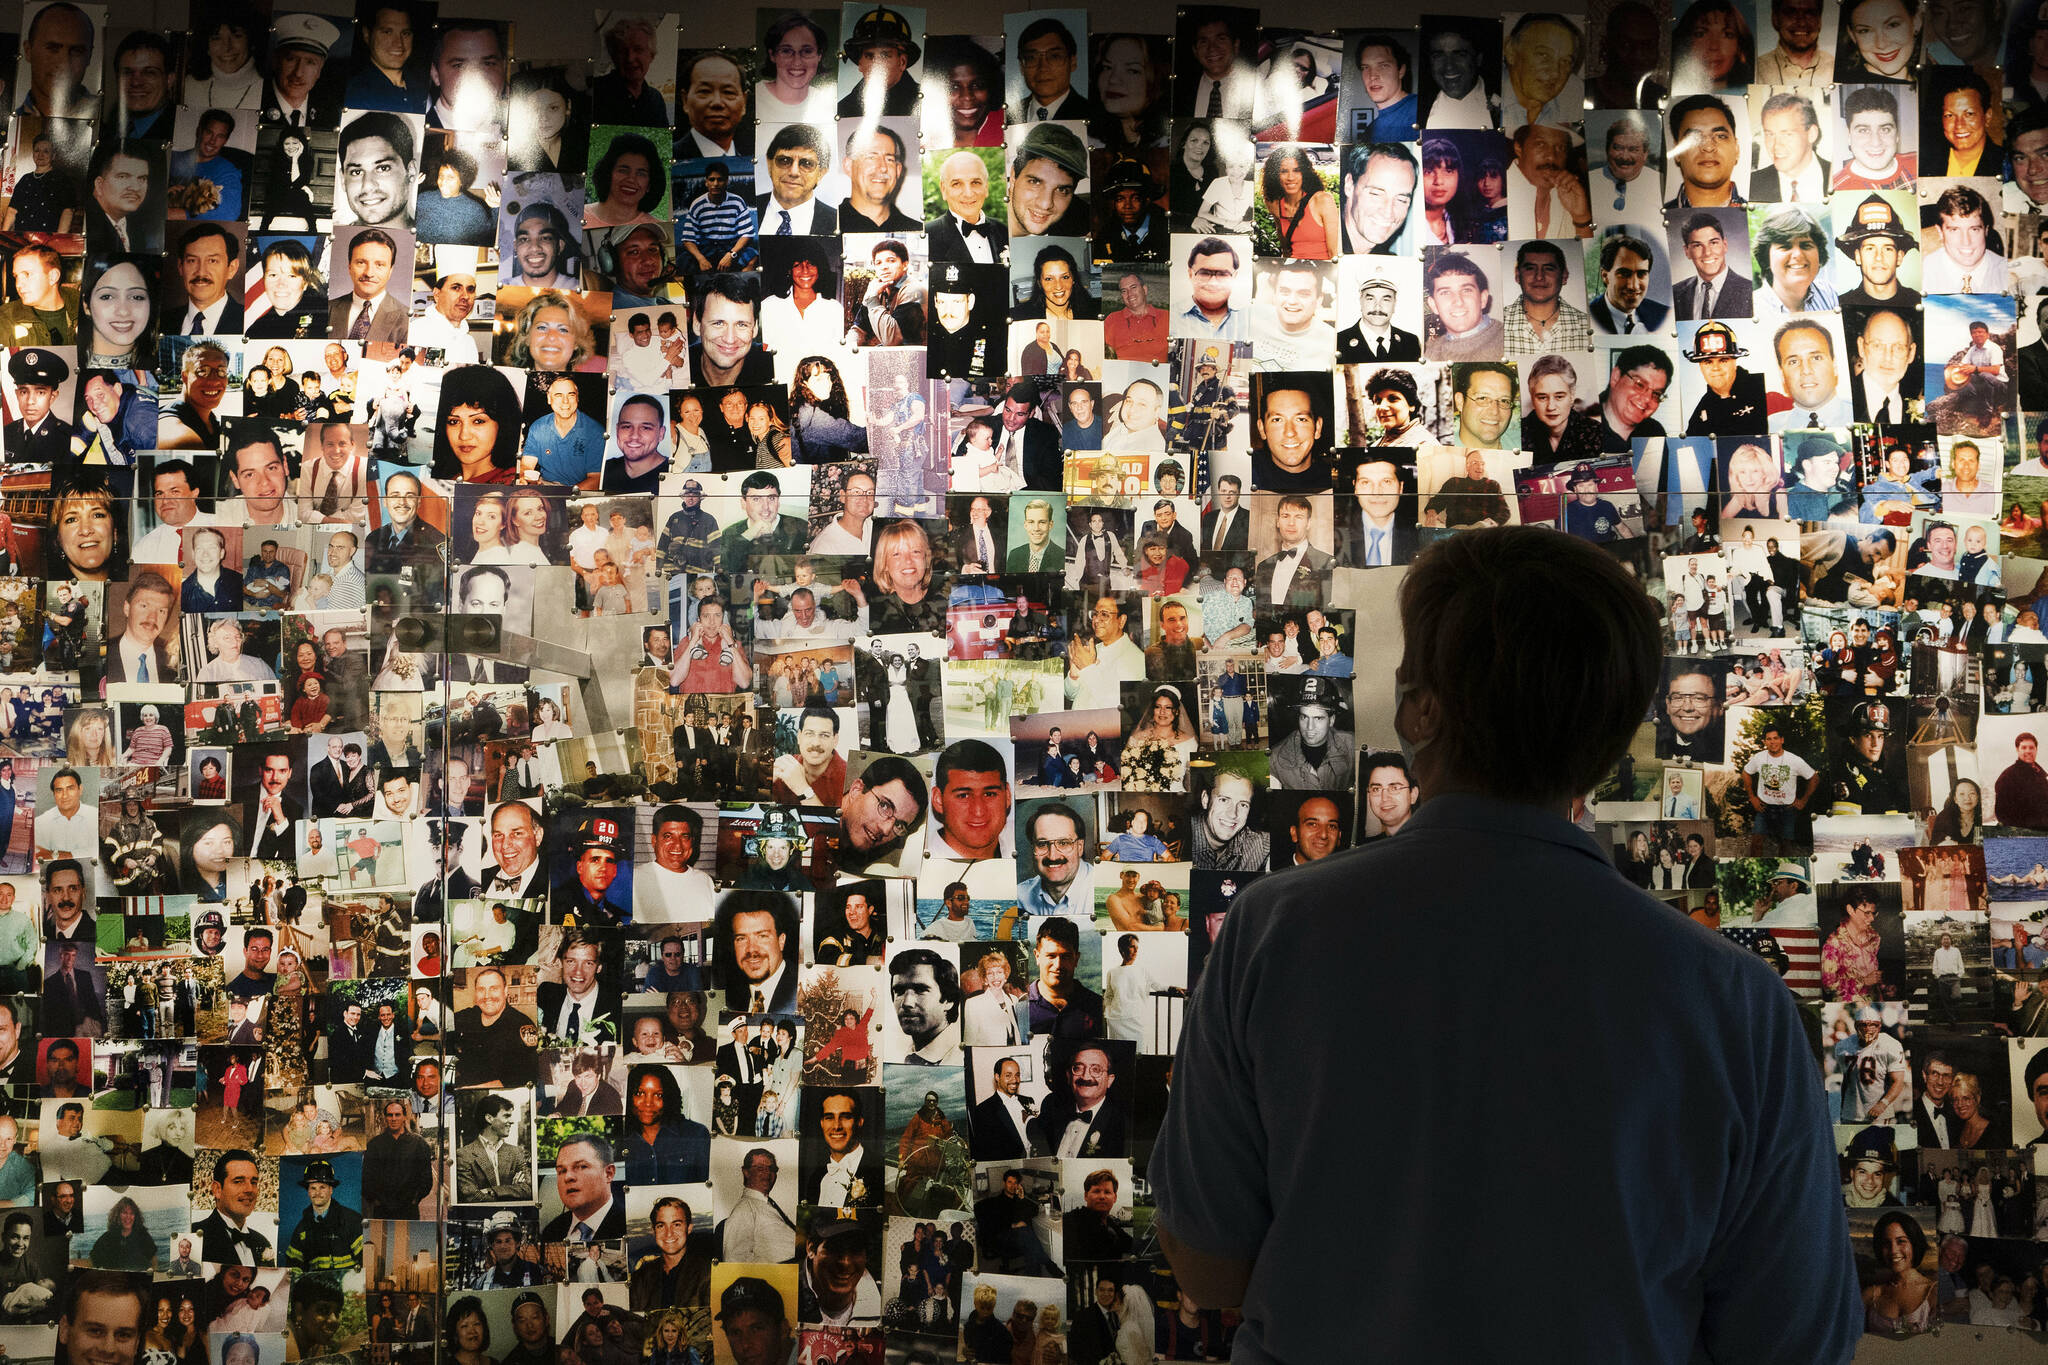 Désirée Bouchat, a survivor of the 9/11 attacks on the World Trade Center, looks at photos of those who perished, in a display at the 9/11 Tribute Museum, Friday, Aug. 6, 2021, in New York. While Sept. 11 was a day of carnage, it also was a story of survival: Nearly 3,000 people were killed, but an estimated 33,000 or more people evacuated the World Trade Center and Pentagon. (AP Photo/Mark Lennihan)